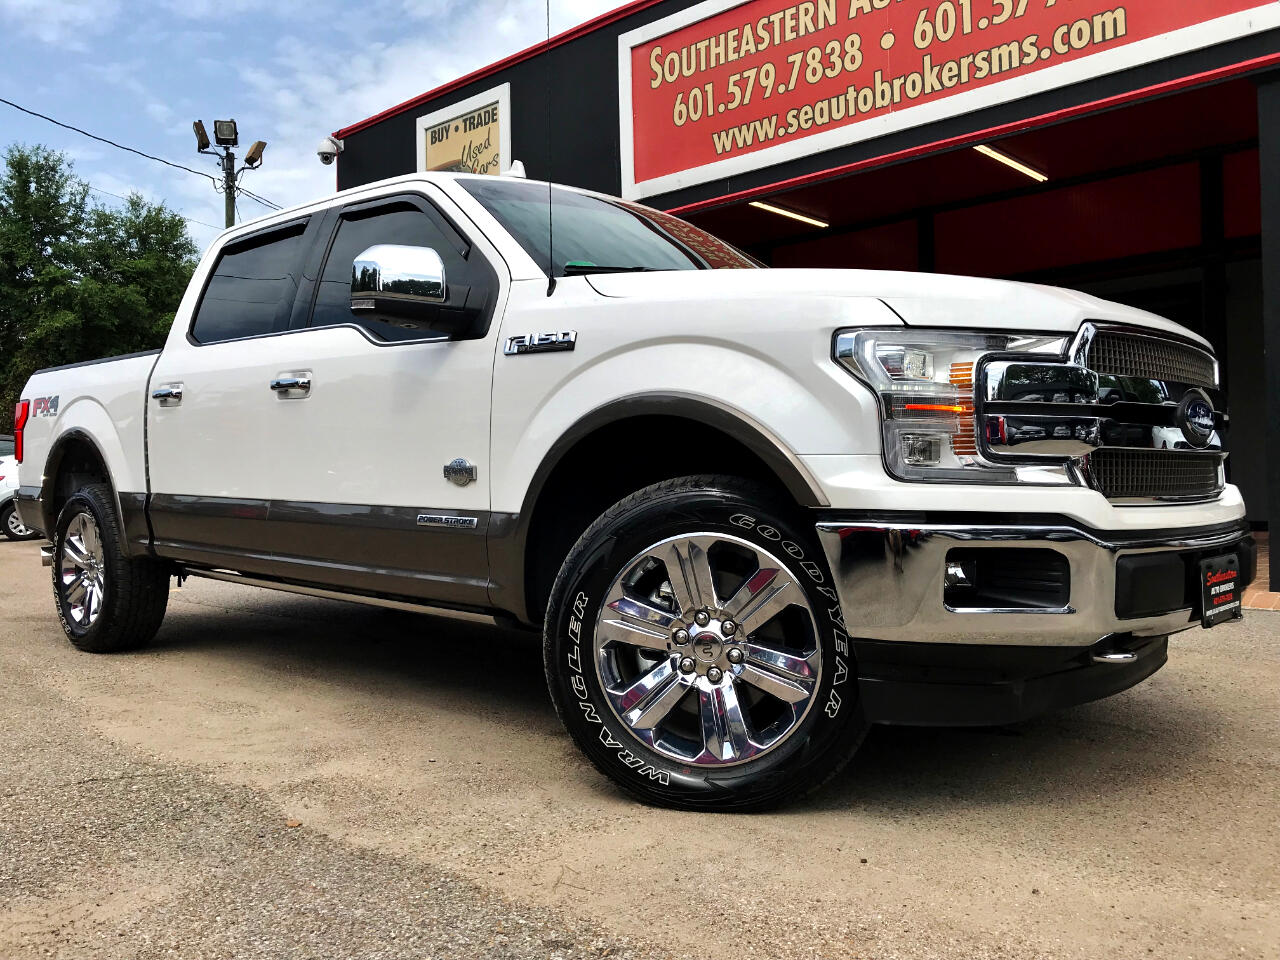 2018 Ford F-150 KING RANCH CREW CAB SHORT BED 4WD DIESEL